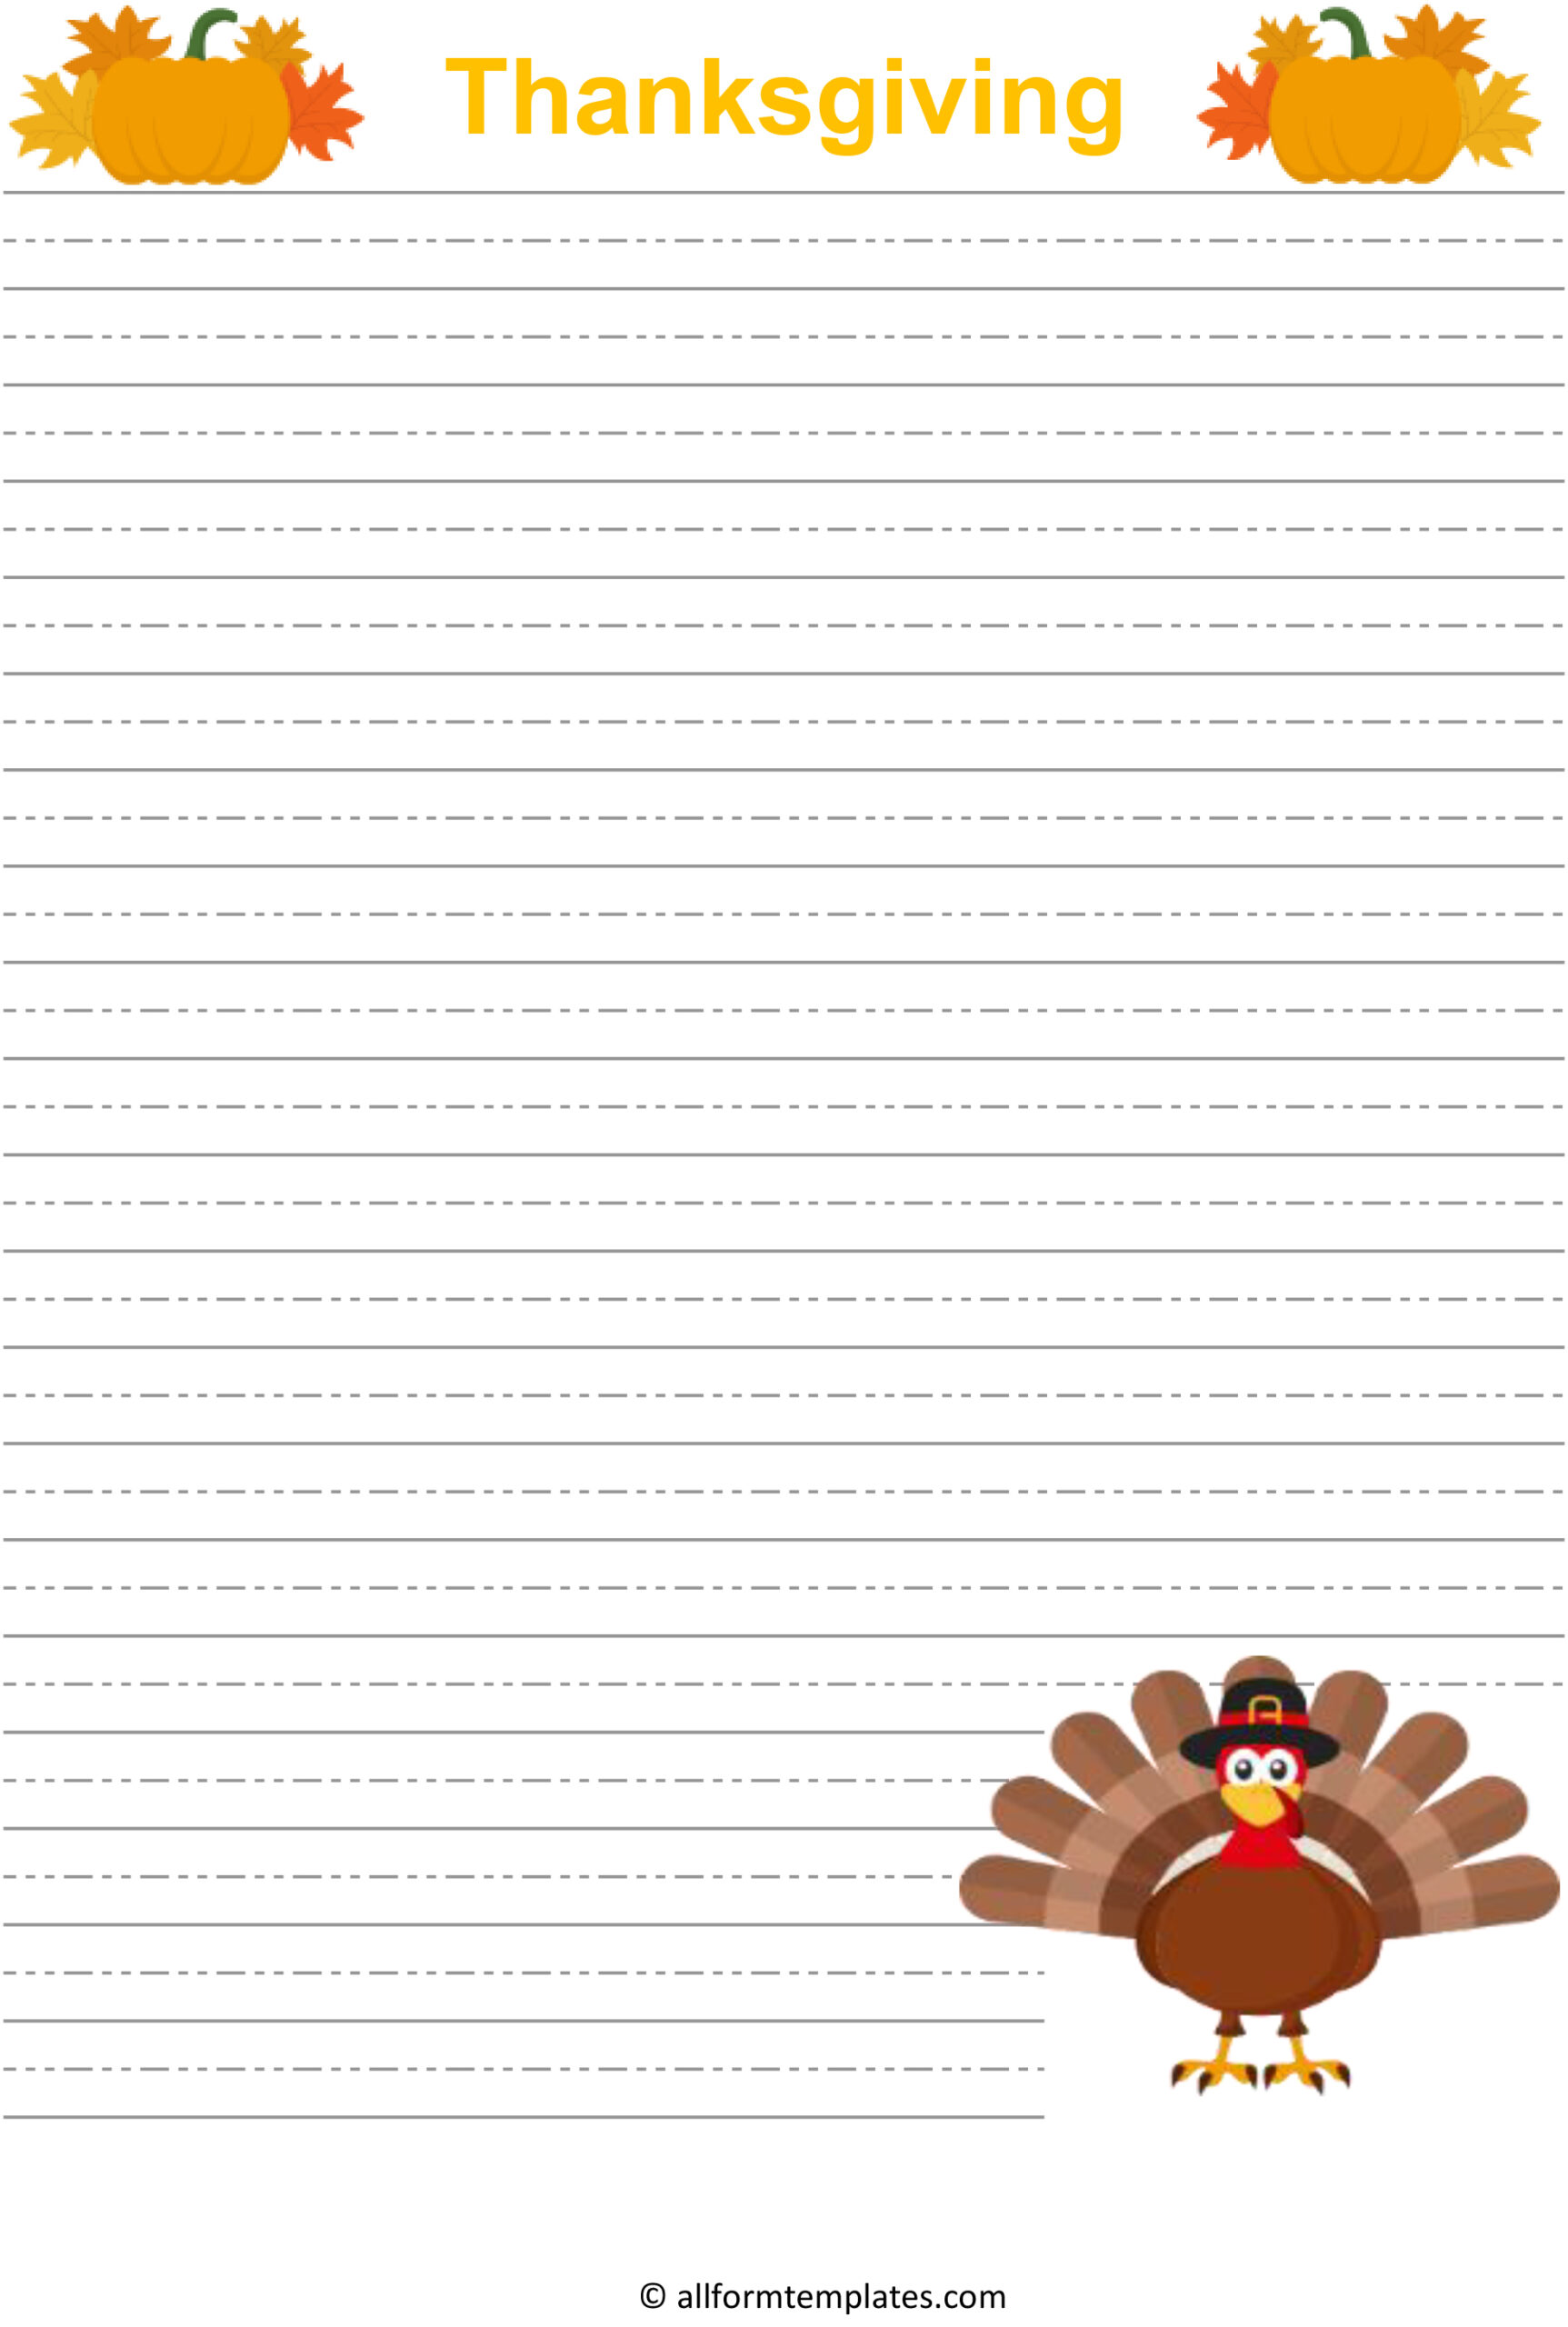 Thanksgiving-Line-Paper-HD